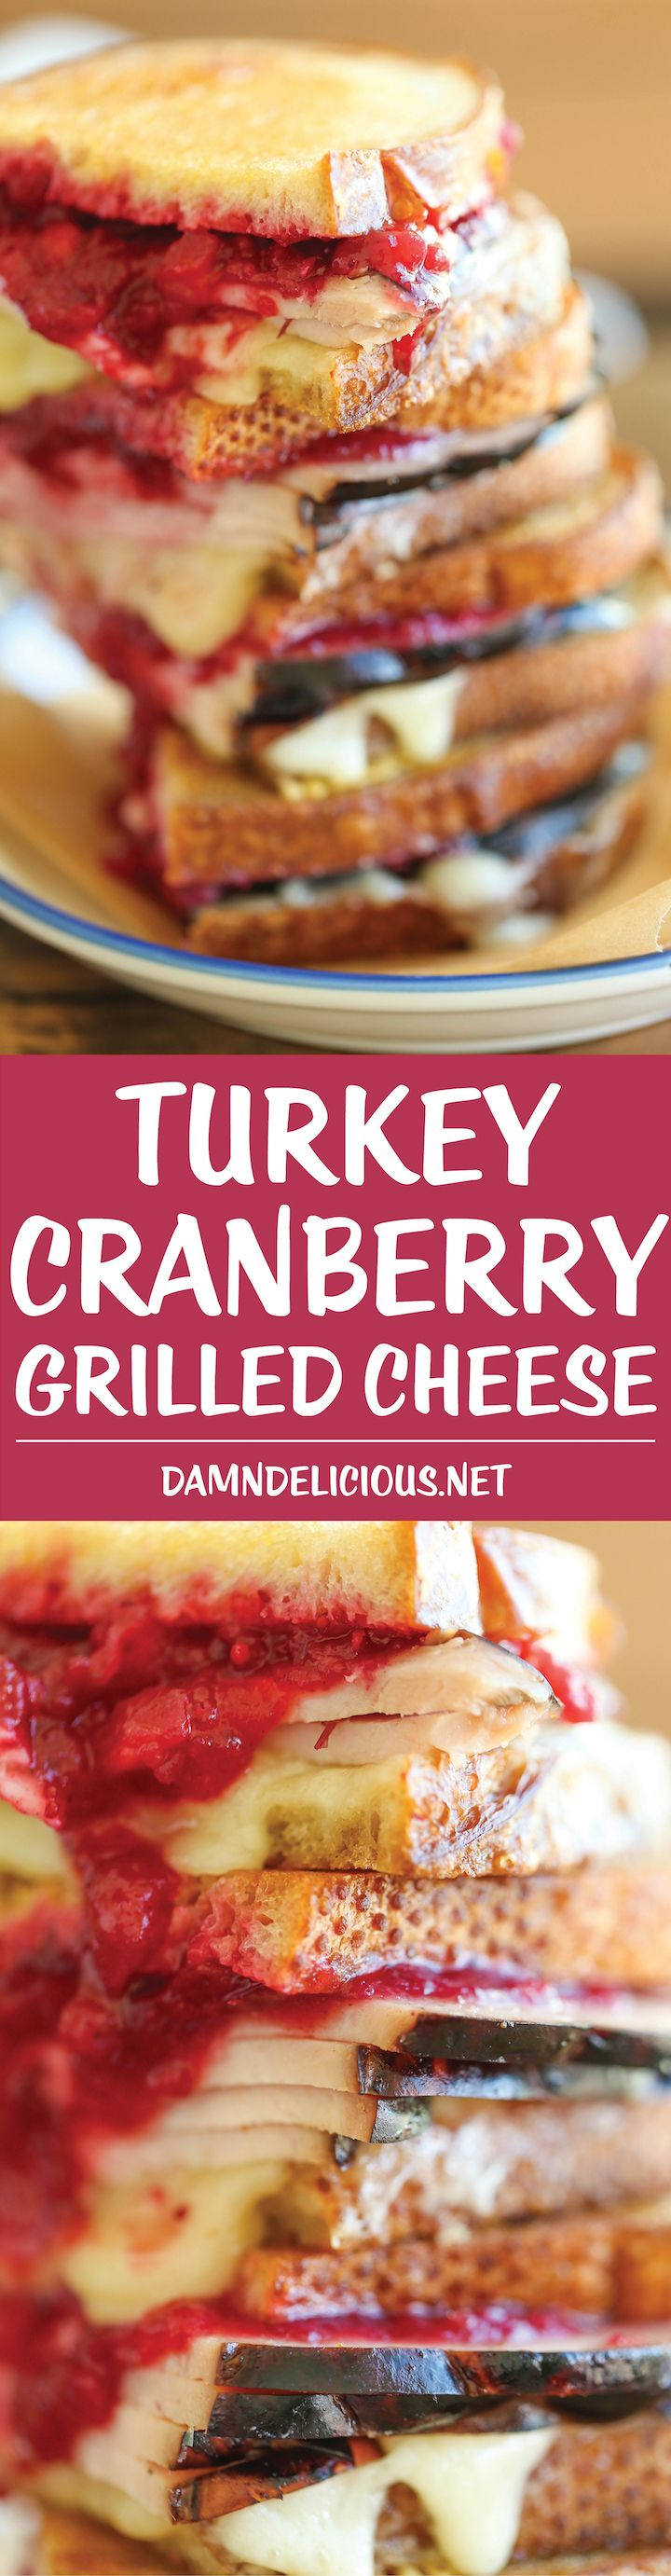 Turkey Cranberry Grilled Cheese - Transform your leftovers into the easiest and most amazing post-Thanksgiving sandwich. It will be the BEST grilled cheese!